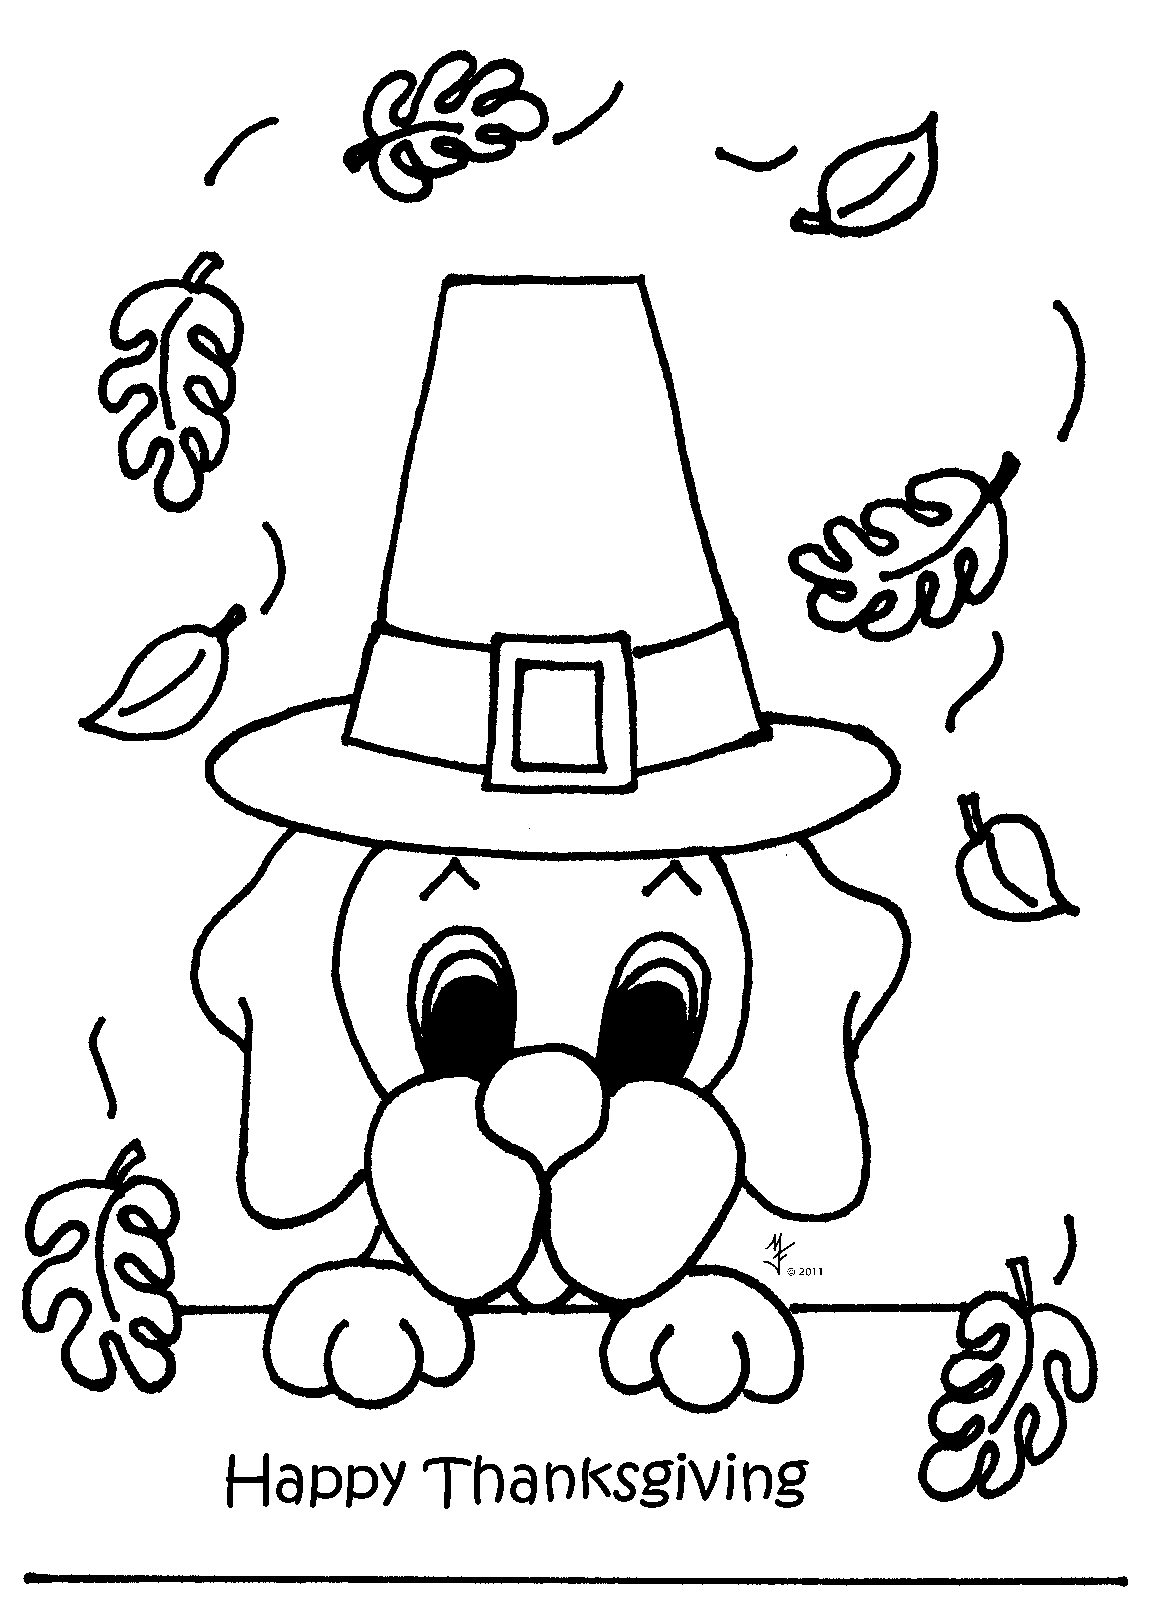 November Coloring Pages To Download And Print For Free